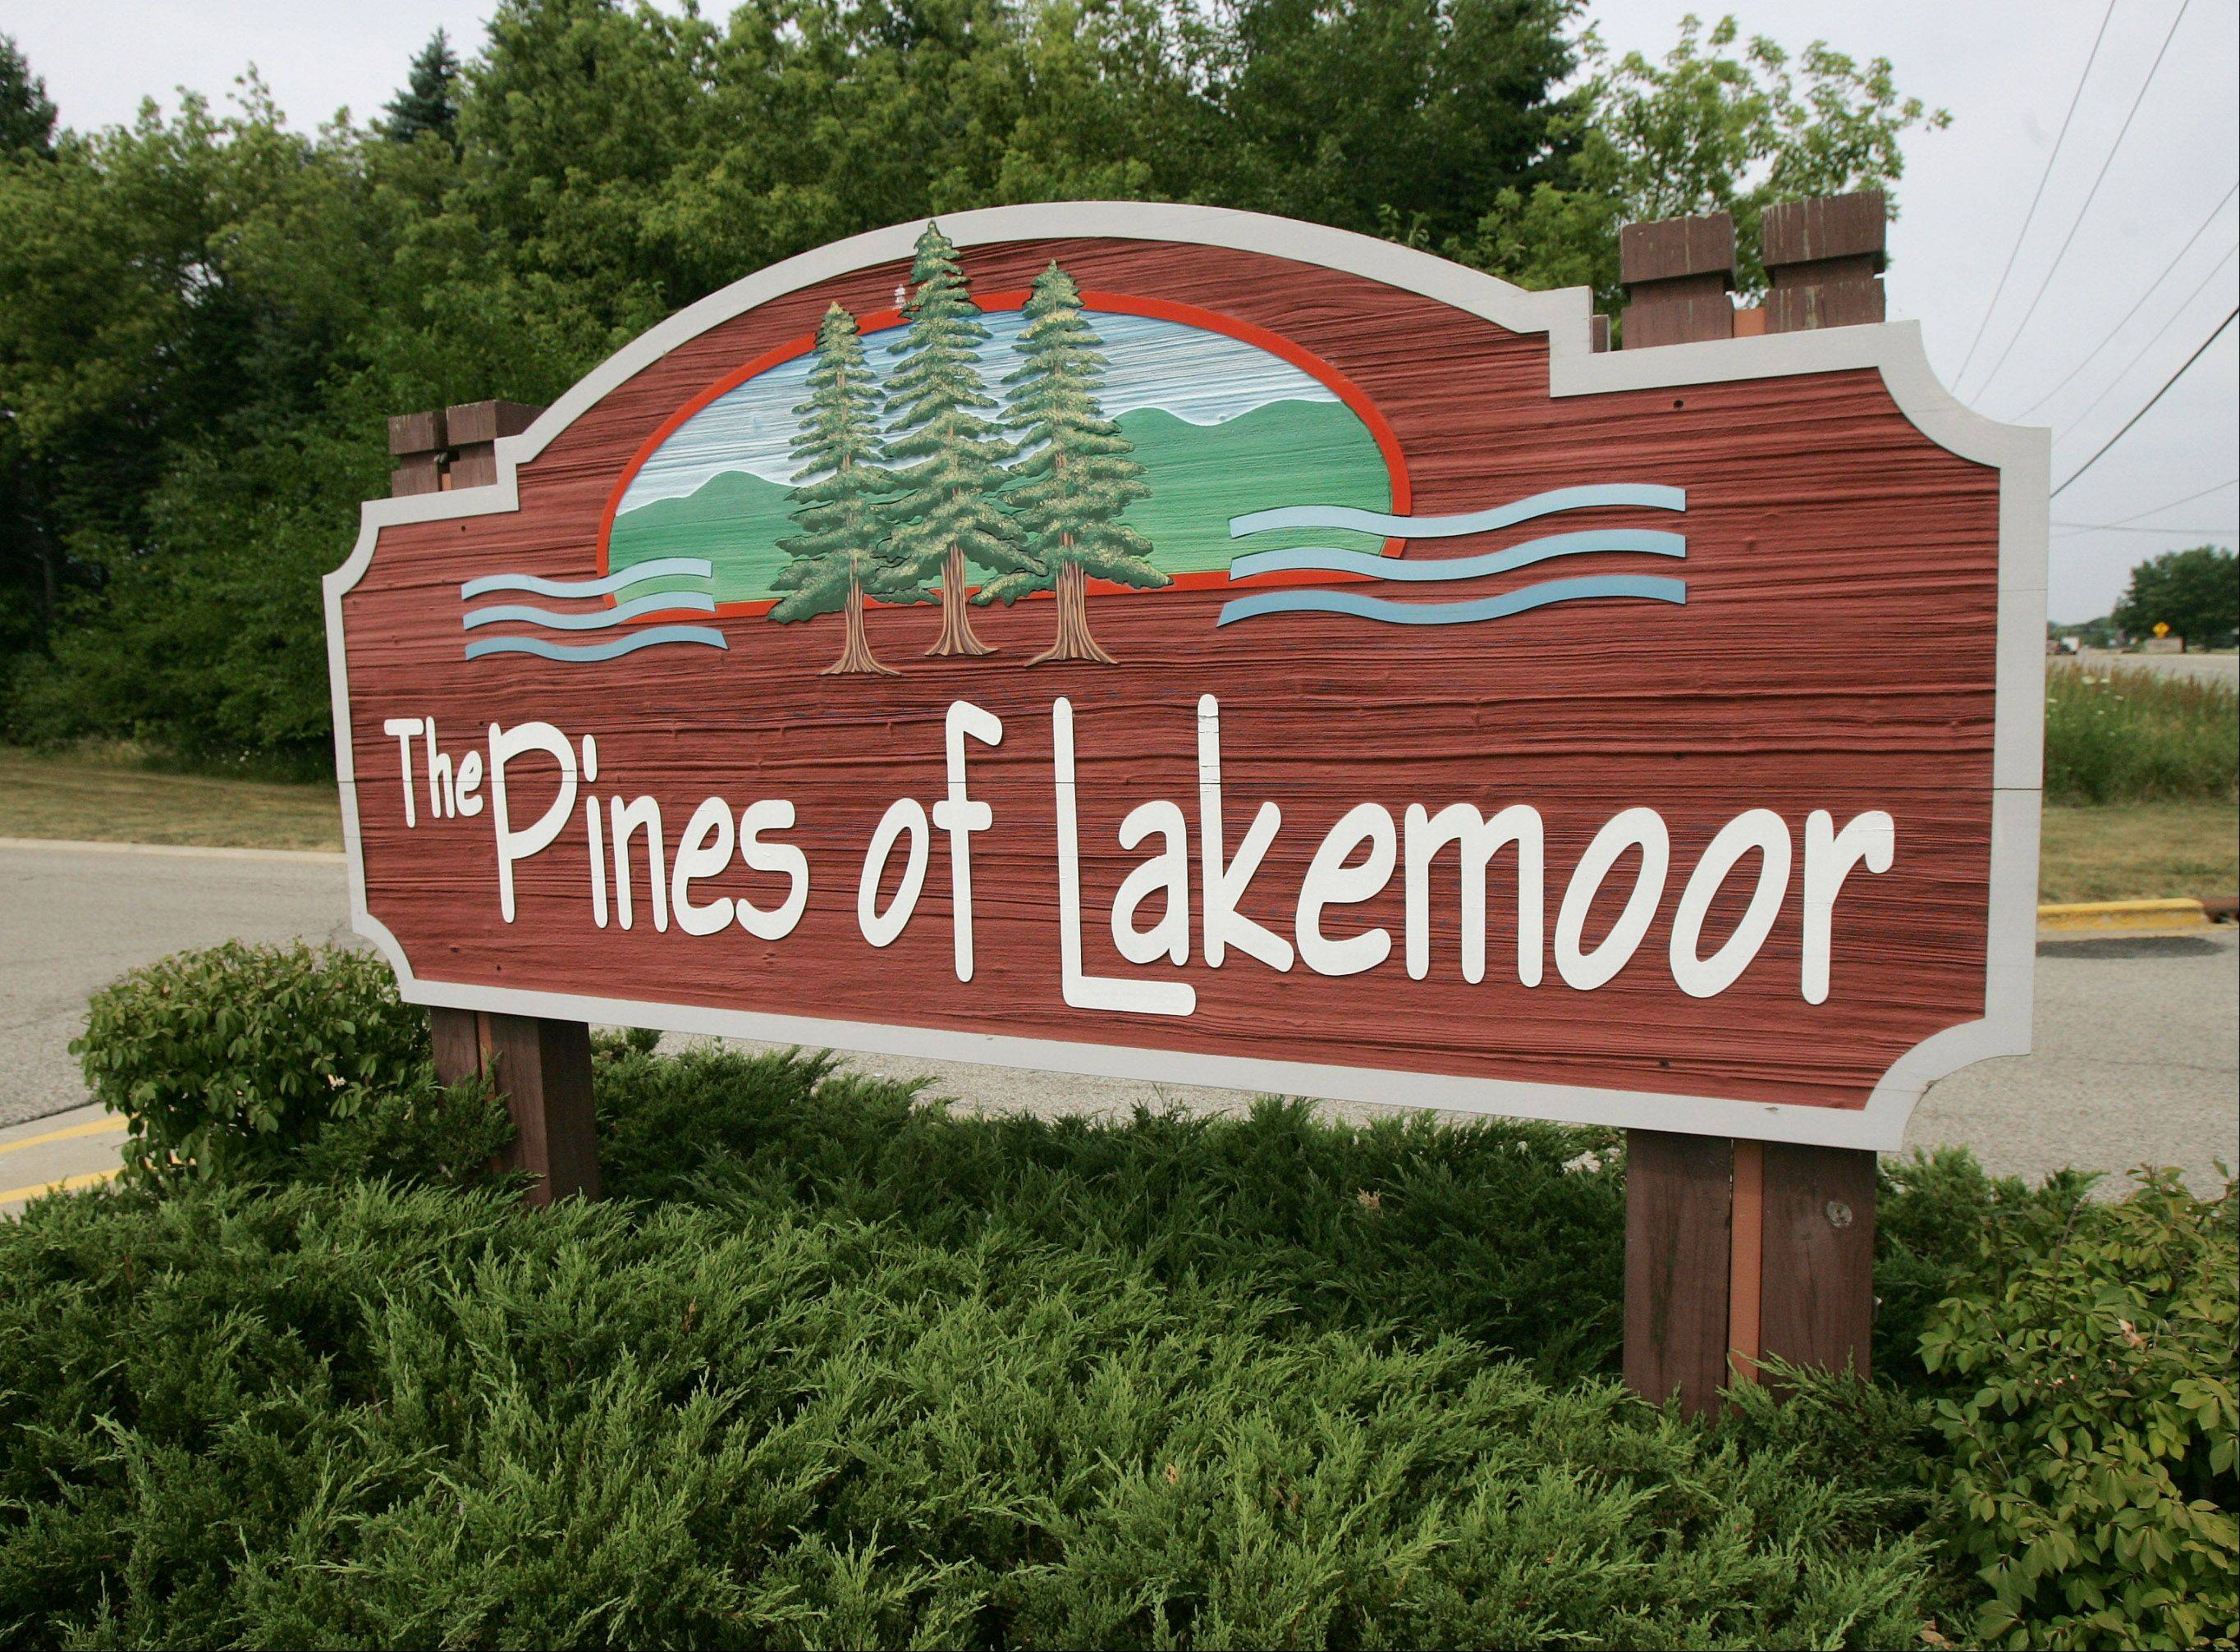 About 130 single-family homes and 142 condominiums make of the The Pines of Lakemoor neighborhood.